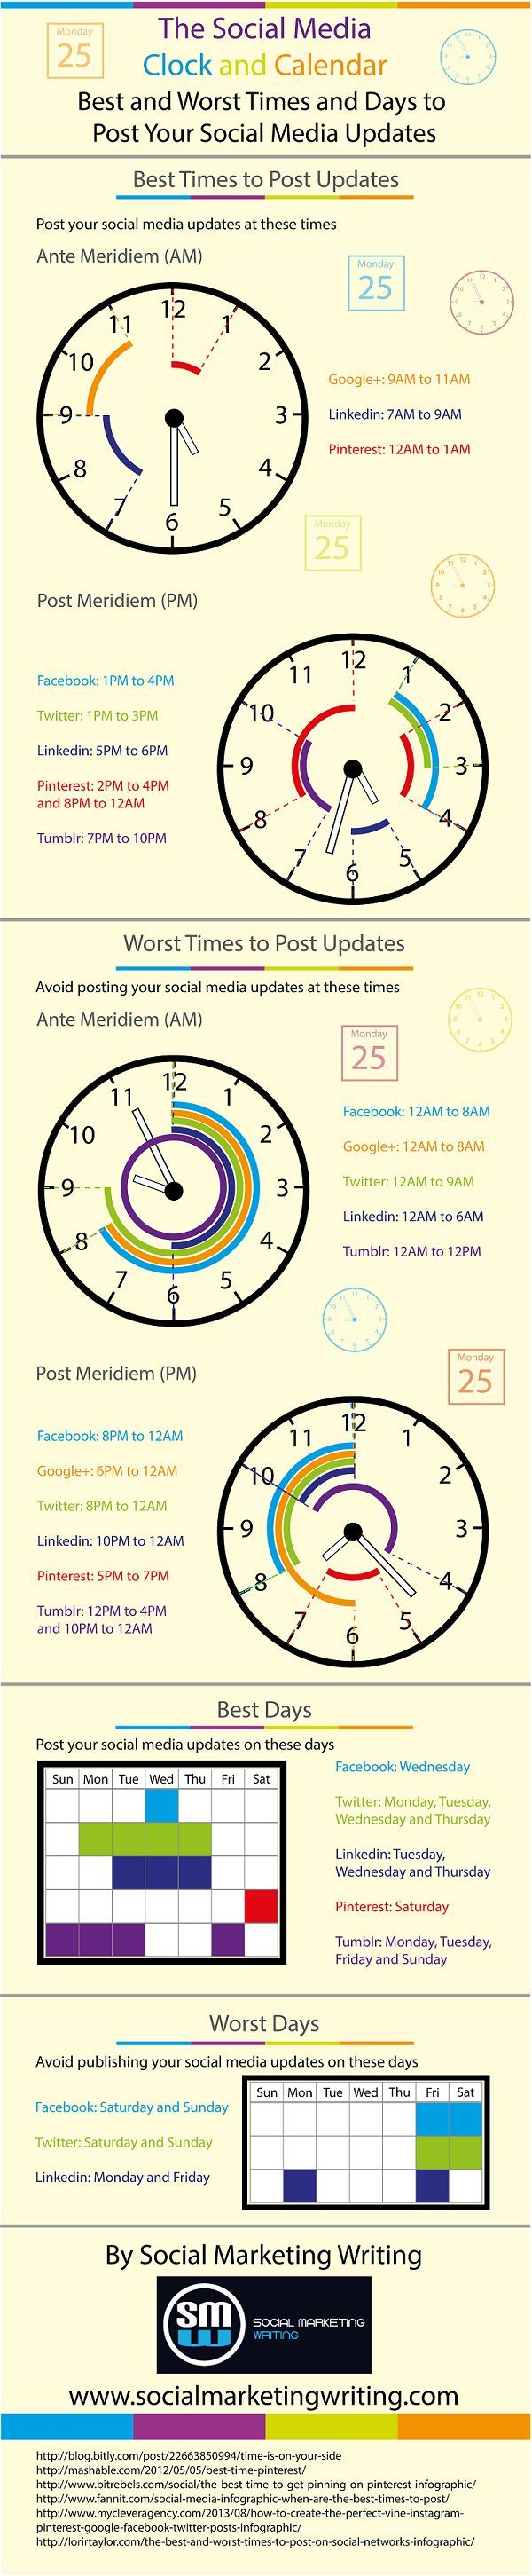 Infographic: Timing is Everything in Social Media Marketing